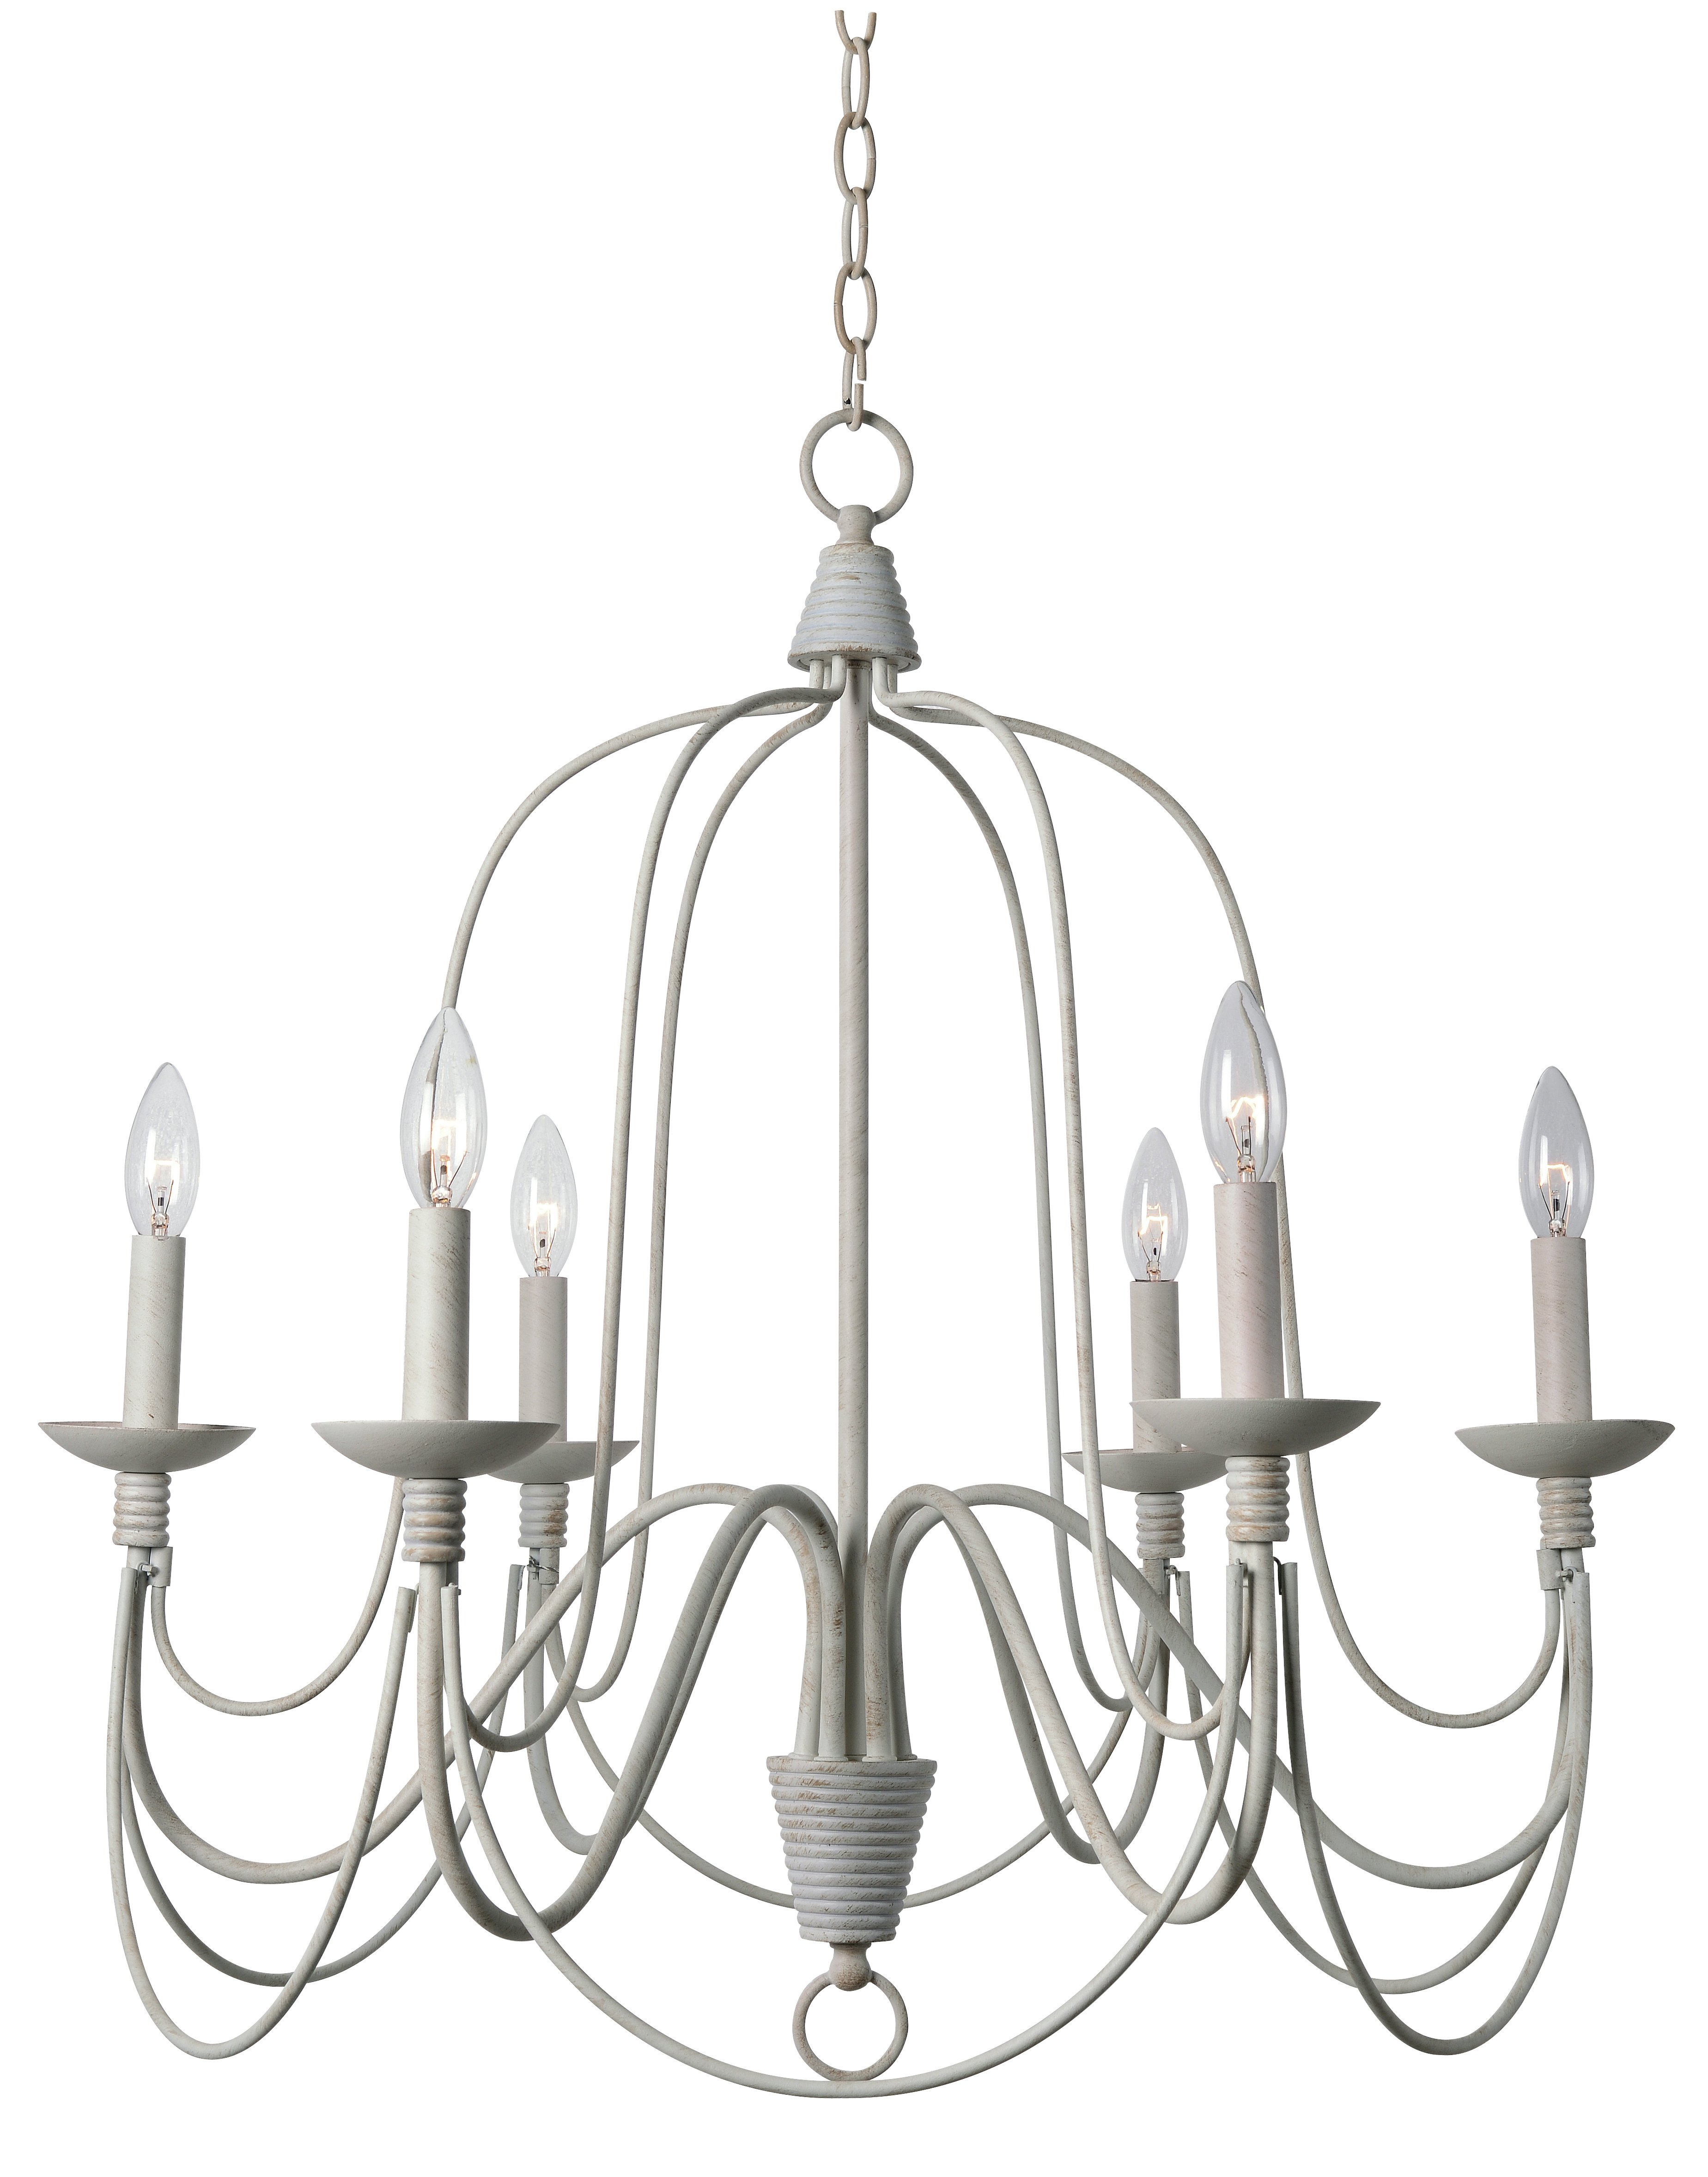 Kollman 6-Light Candle Style Chandelier intended for Camilla 9-Light Candle Style Chandeliers (Image 18 of 30)